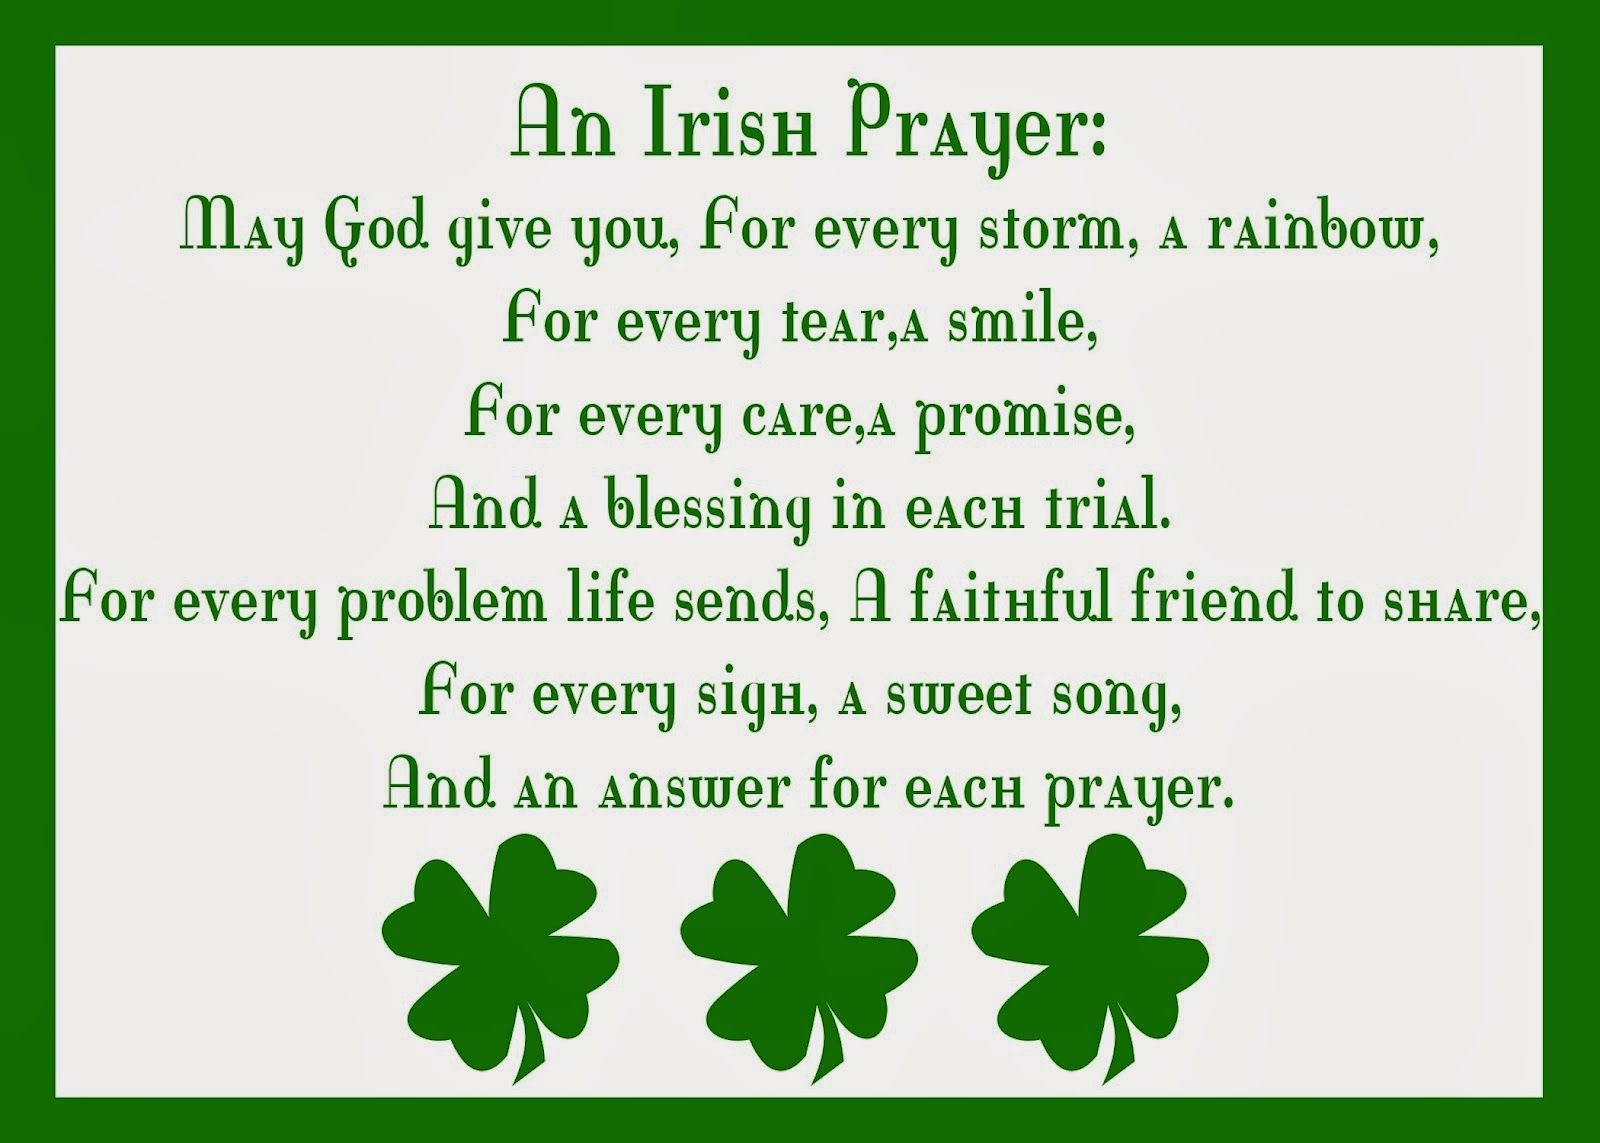 An Irish Prayer Pictures, Photos, and Images for Facebook, Tumblr ...